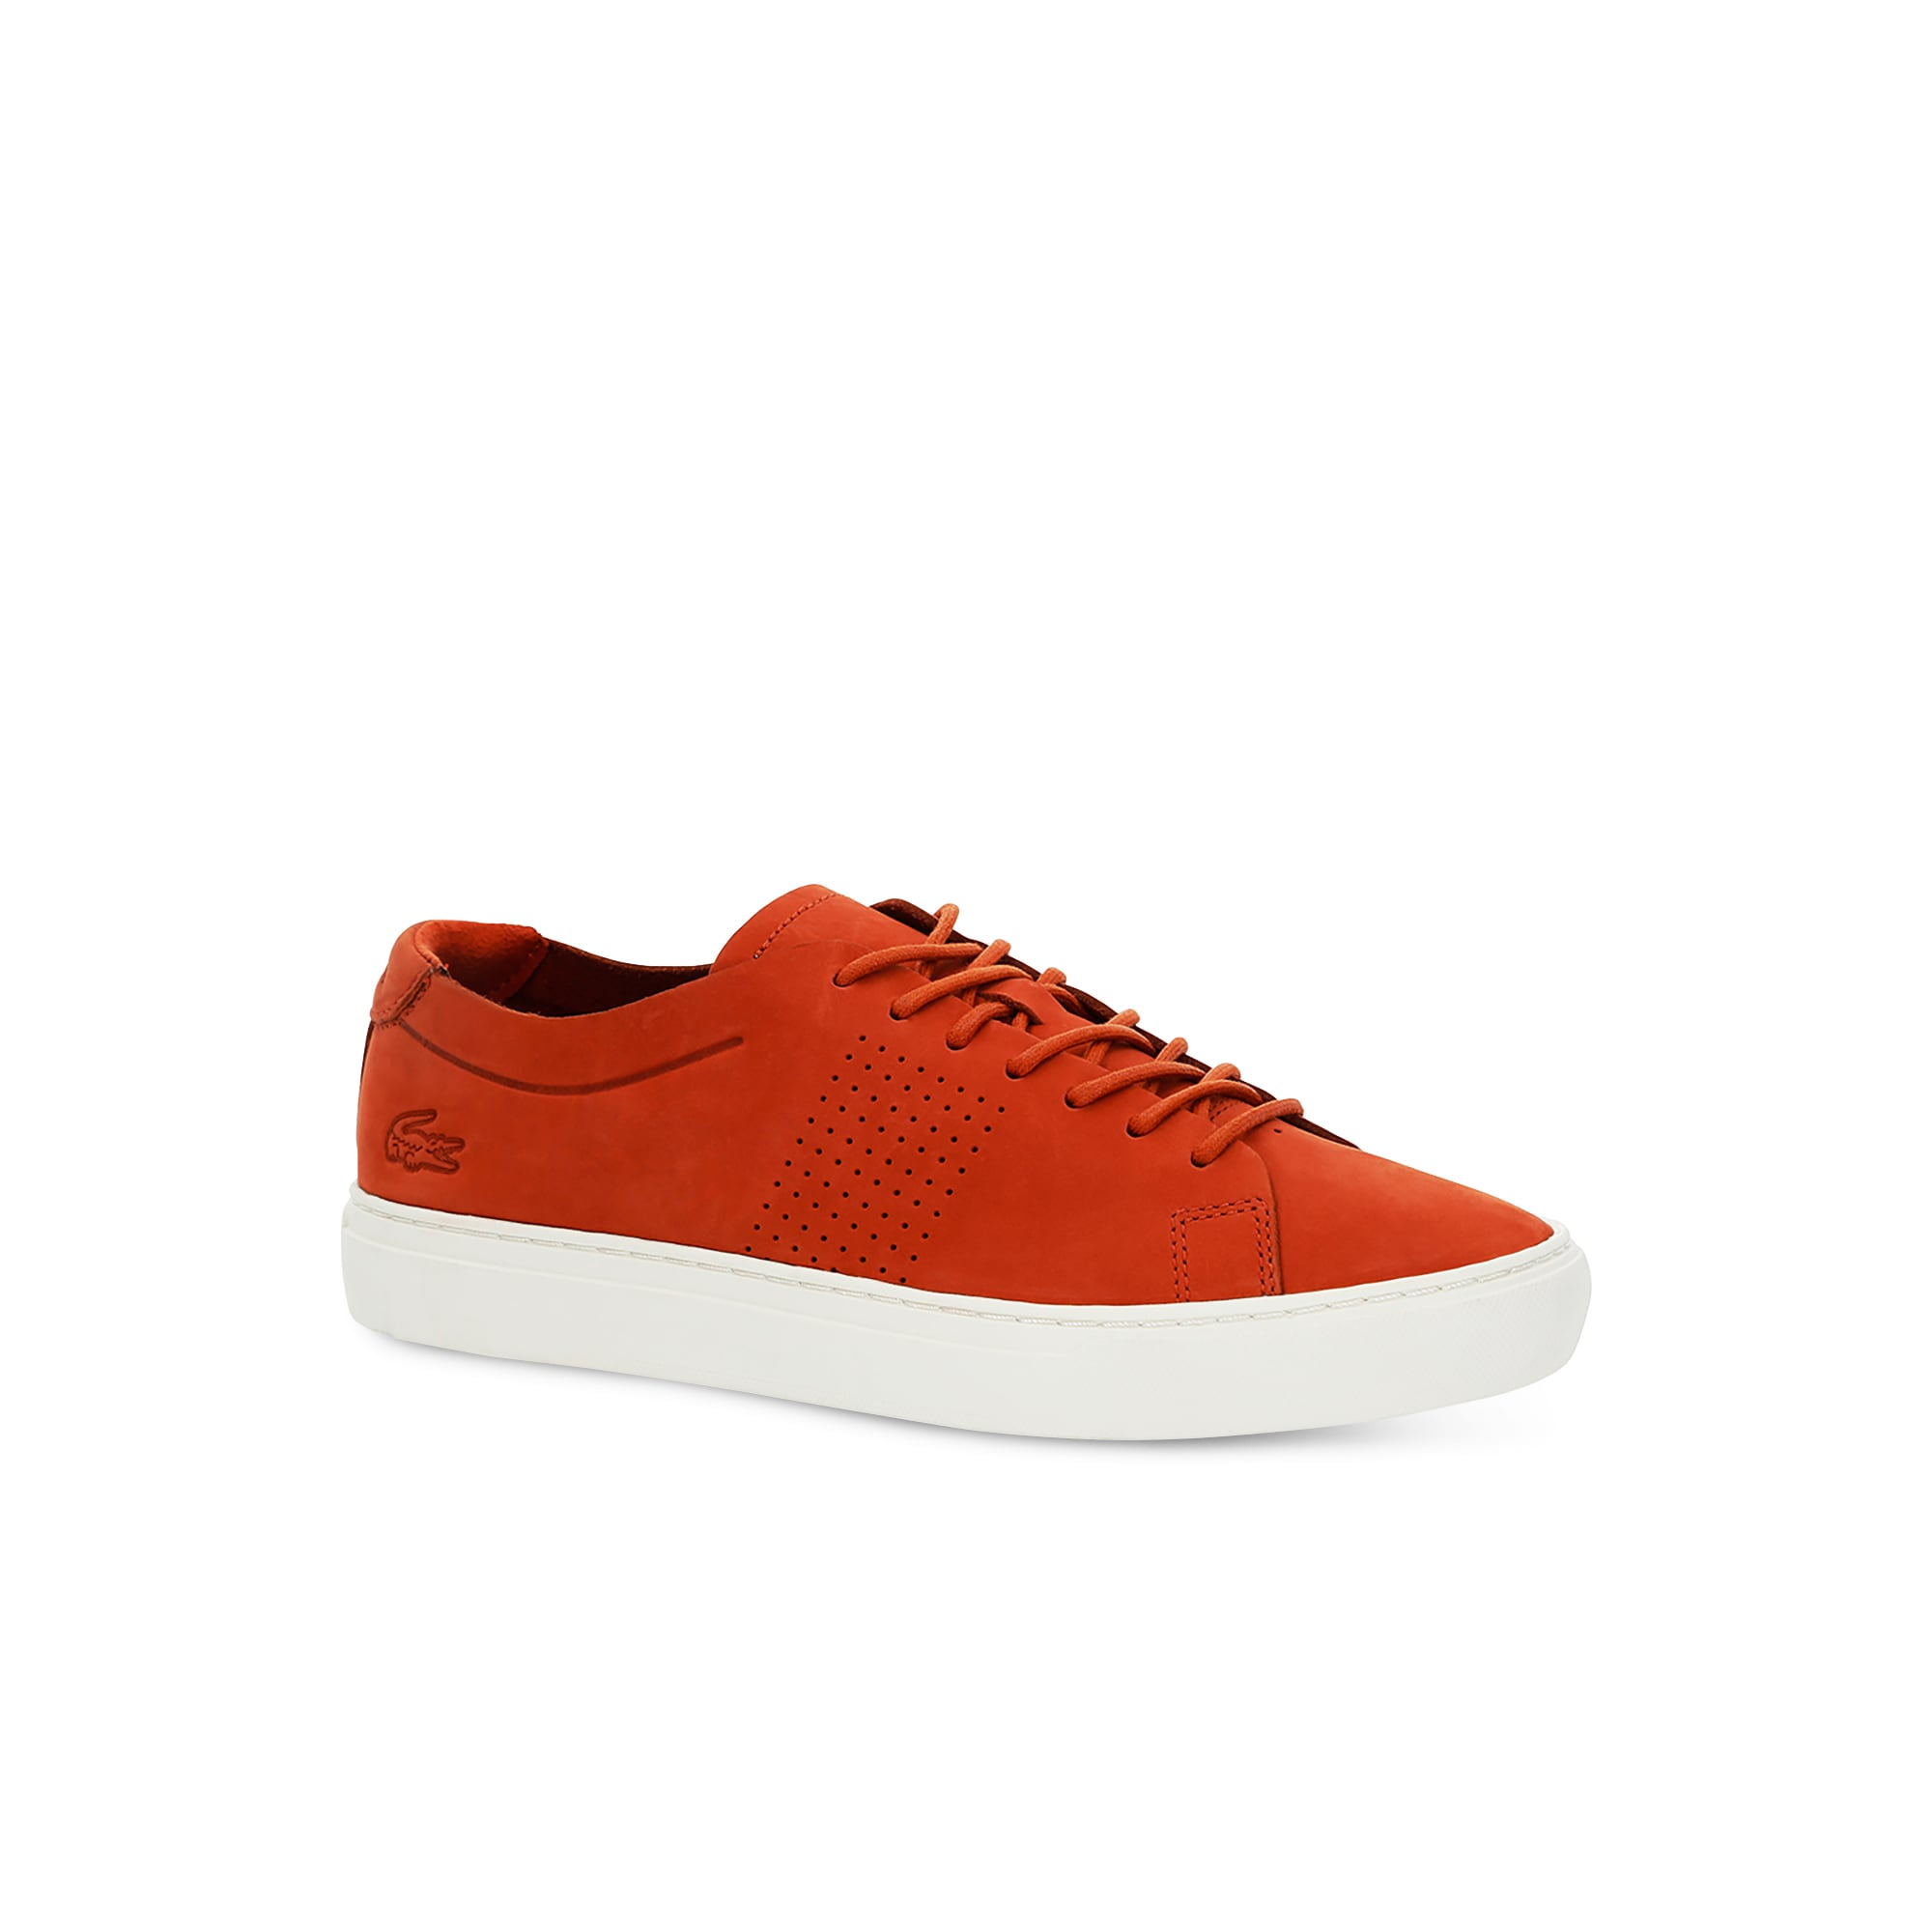 019d3ca0b Men's Shoes | Shoes for Men | LACOSTE